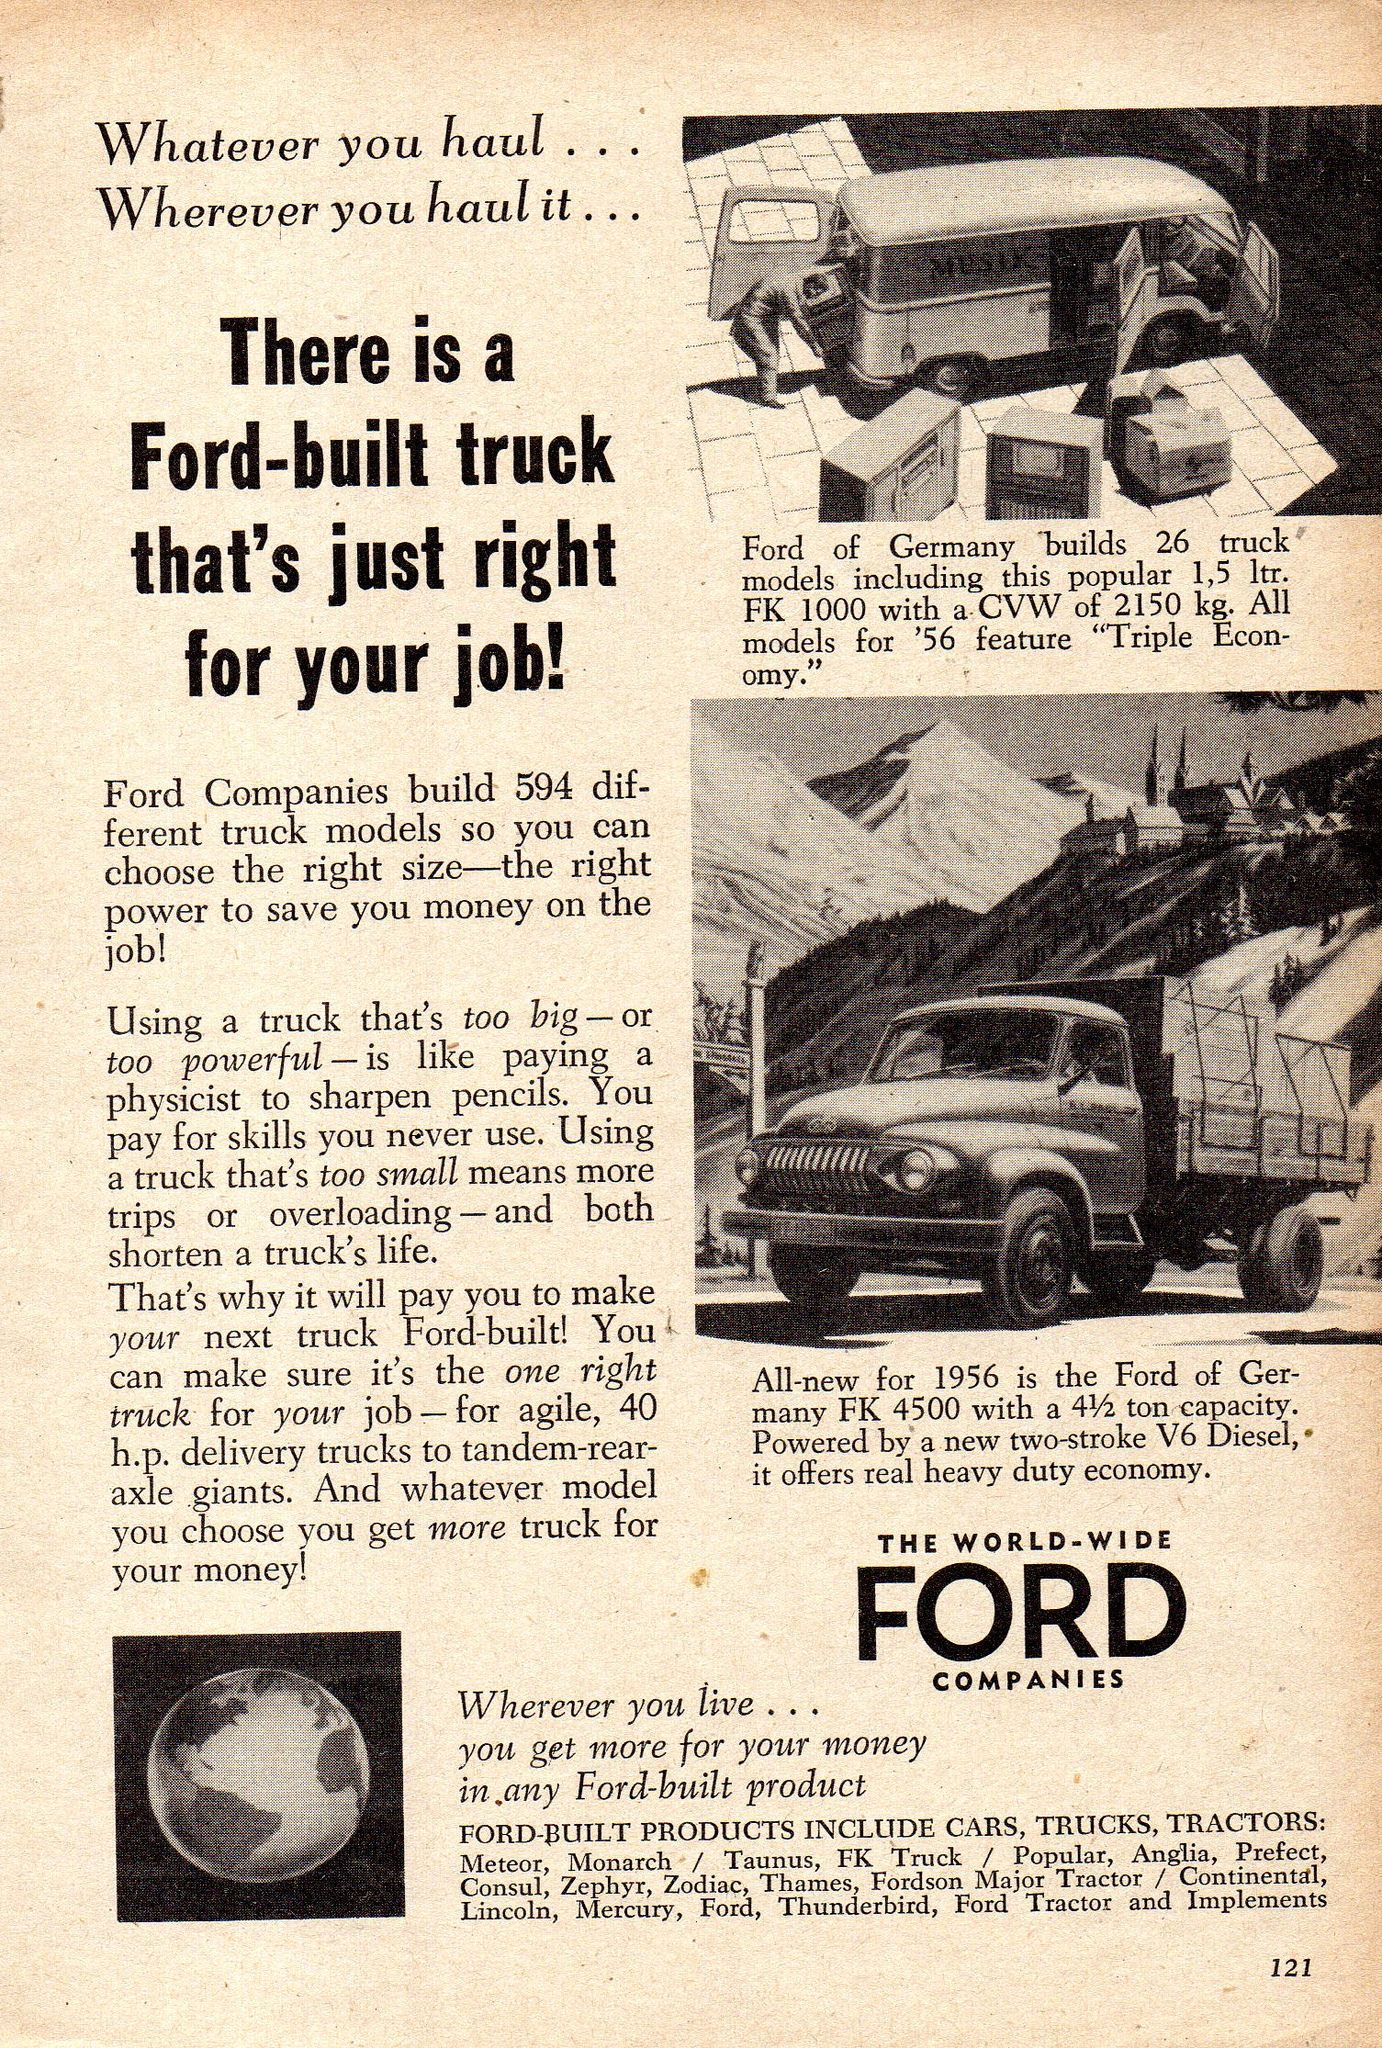 1956 World Wide Ford Companies Trucks Page 2 Aussie Original